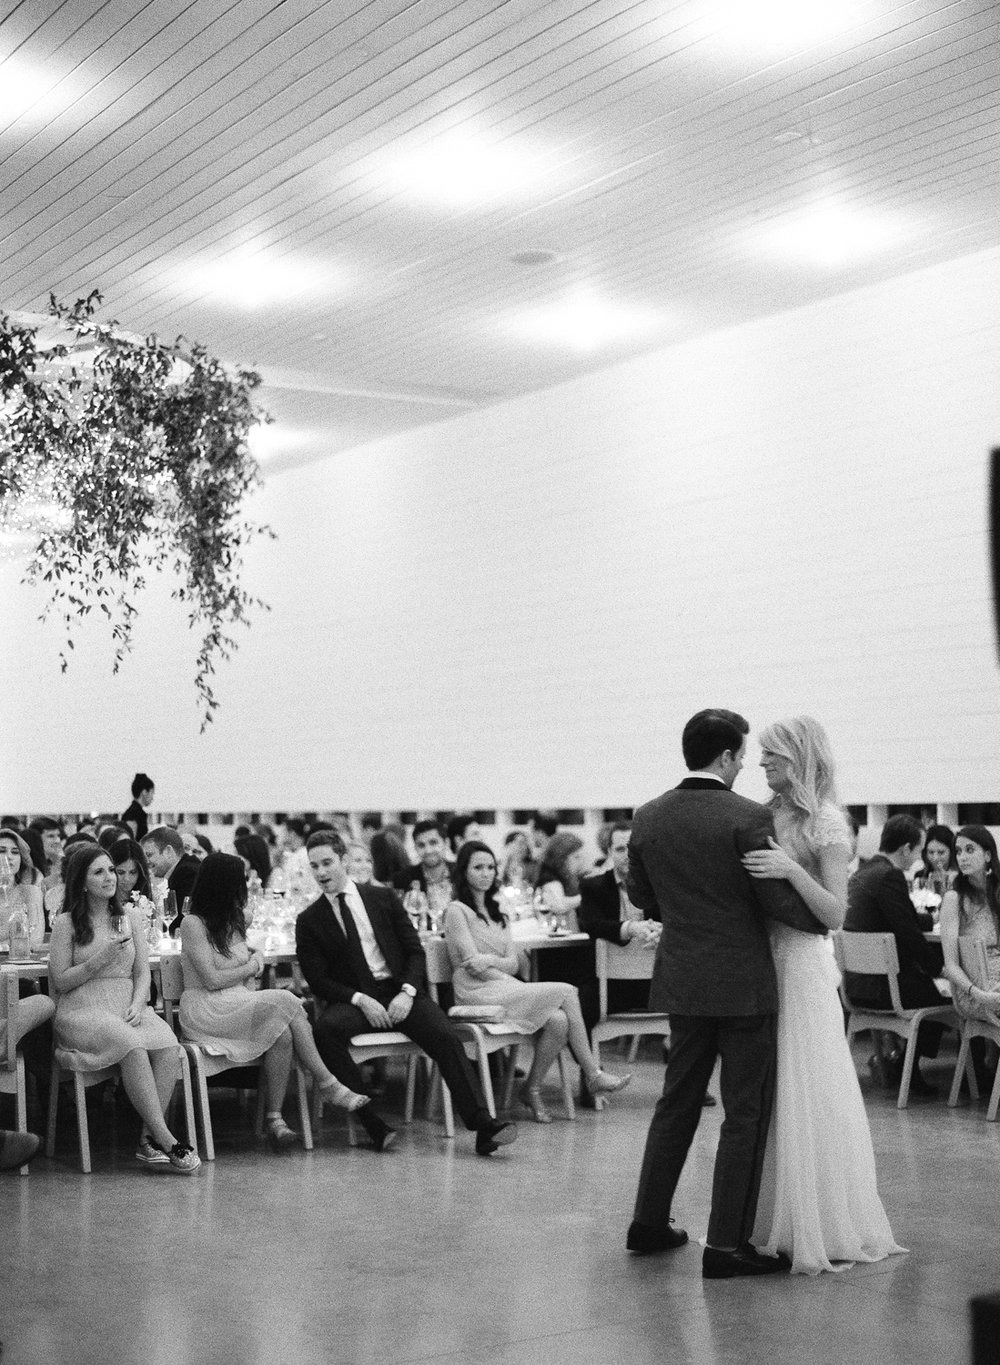 PROSPECT_HOUSE_WEDDING_AUSTIN_TX_BY_MATTHEW_MOORE_PHOTOGRAPHY_00684.jpg